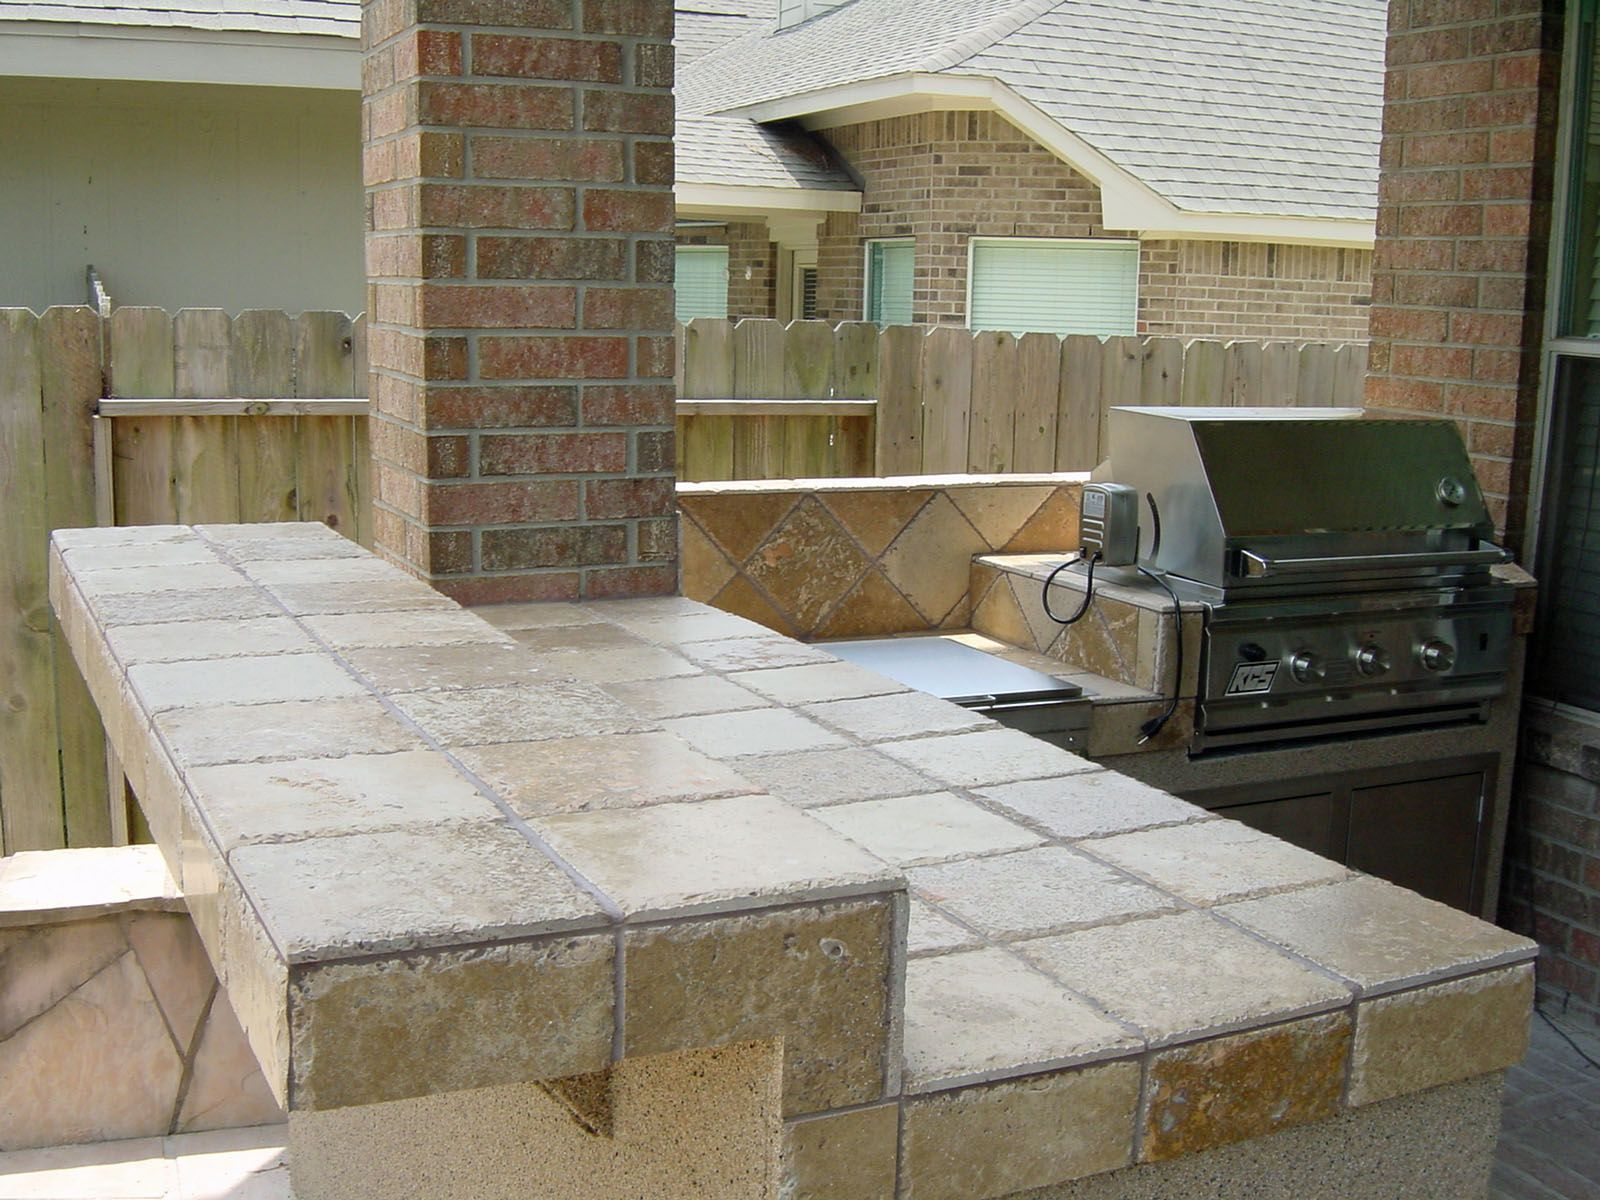 Small outdoor kitchen under patio photos of small for Outdoor kitchen ideas small yard